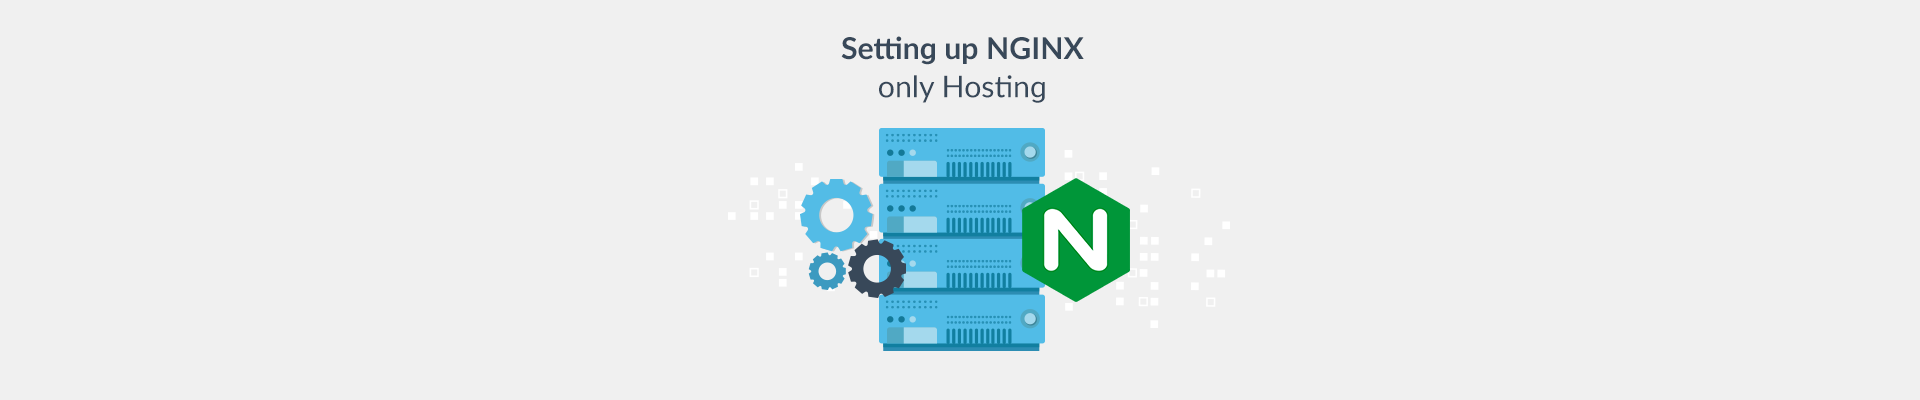 NGINX Hosting for Your Domain